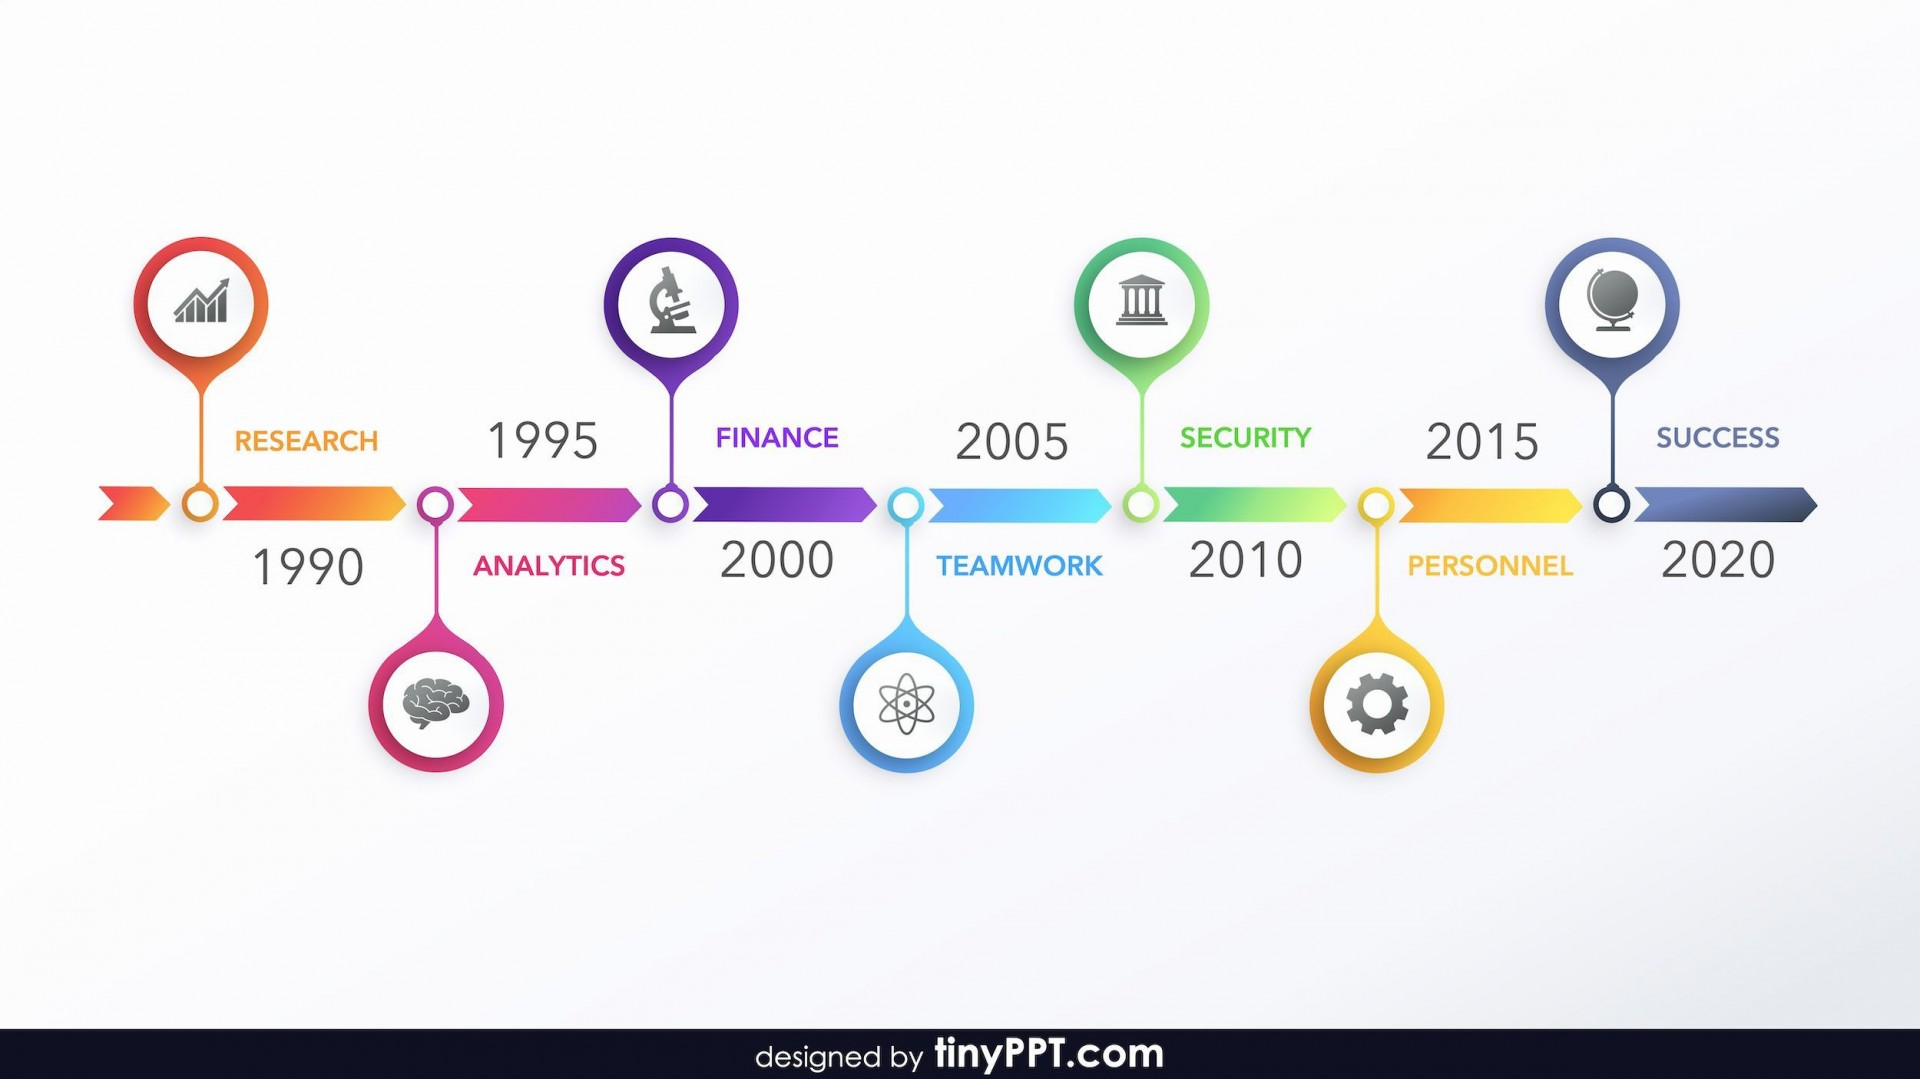 000 Fascinating Project Timeline Template Ppt Free Inspiration  Simple Powerpoint Download1920